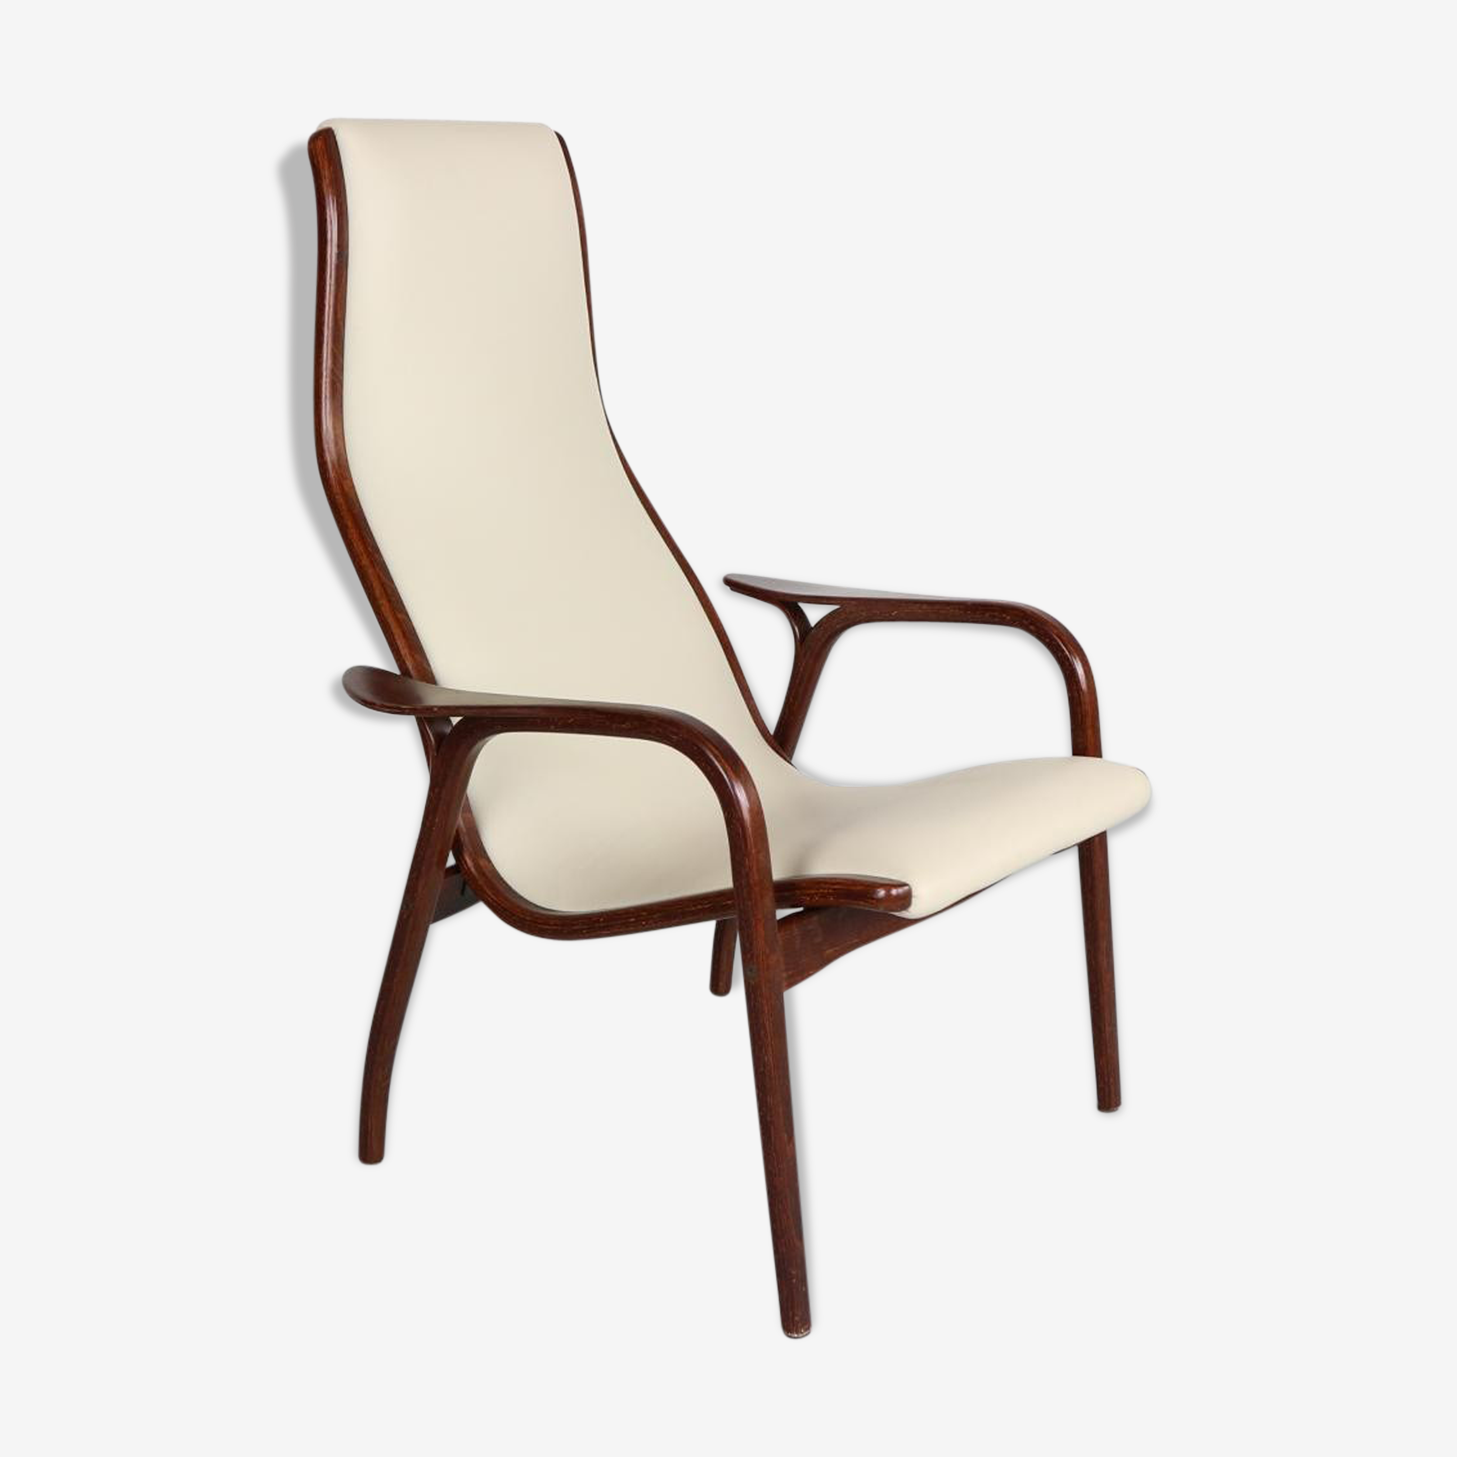 Lamino armchair in leather and wenge by Yngve Ekström for Swedese 1950 s